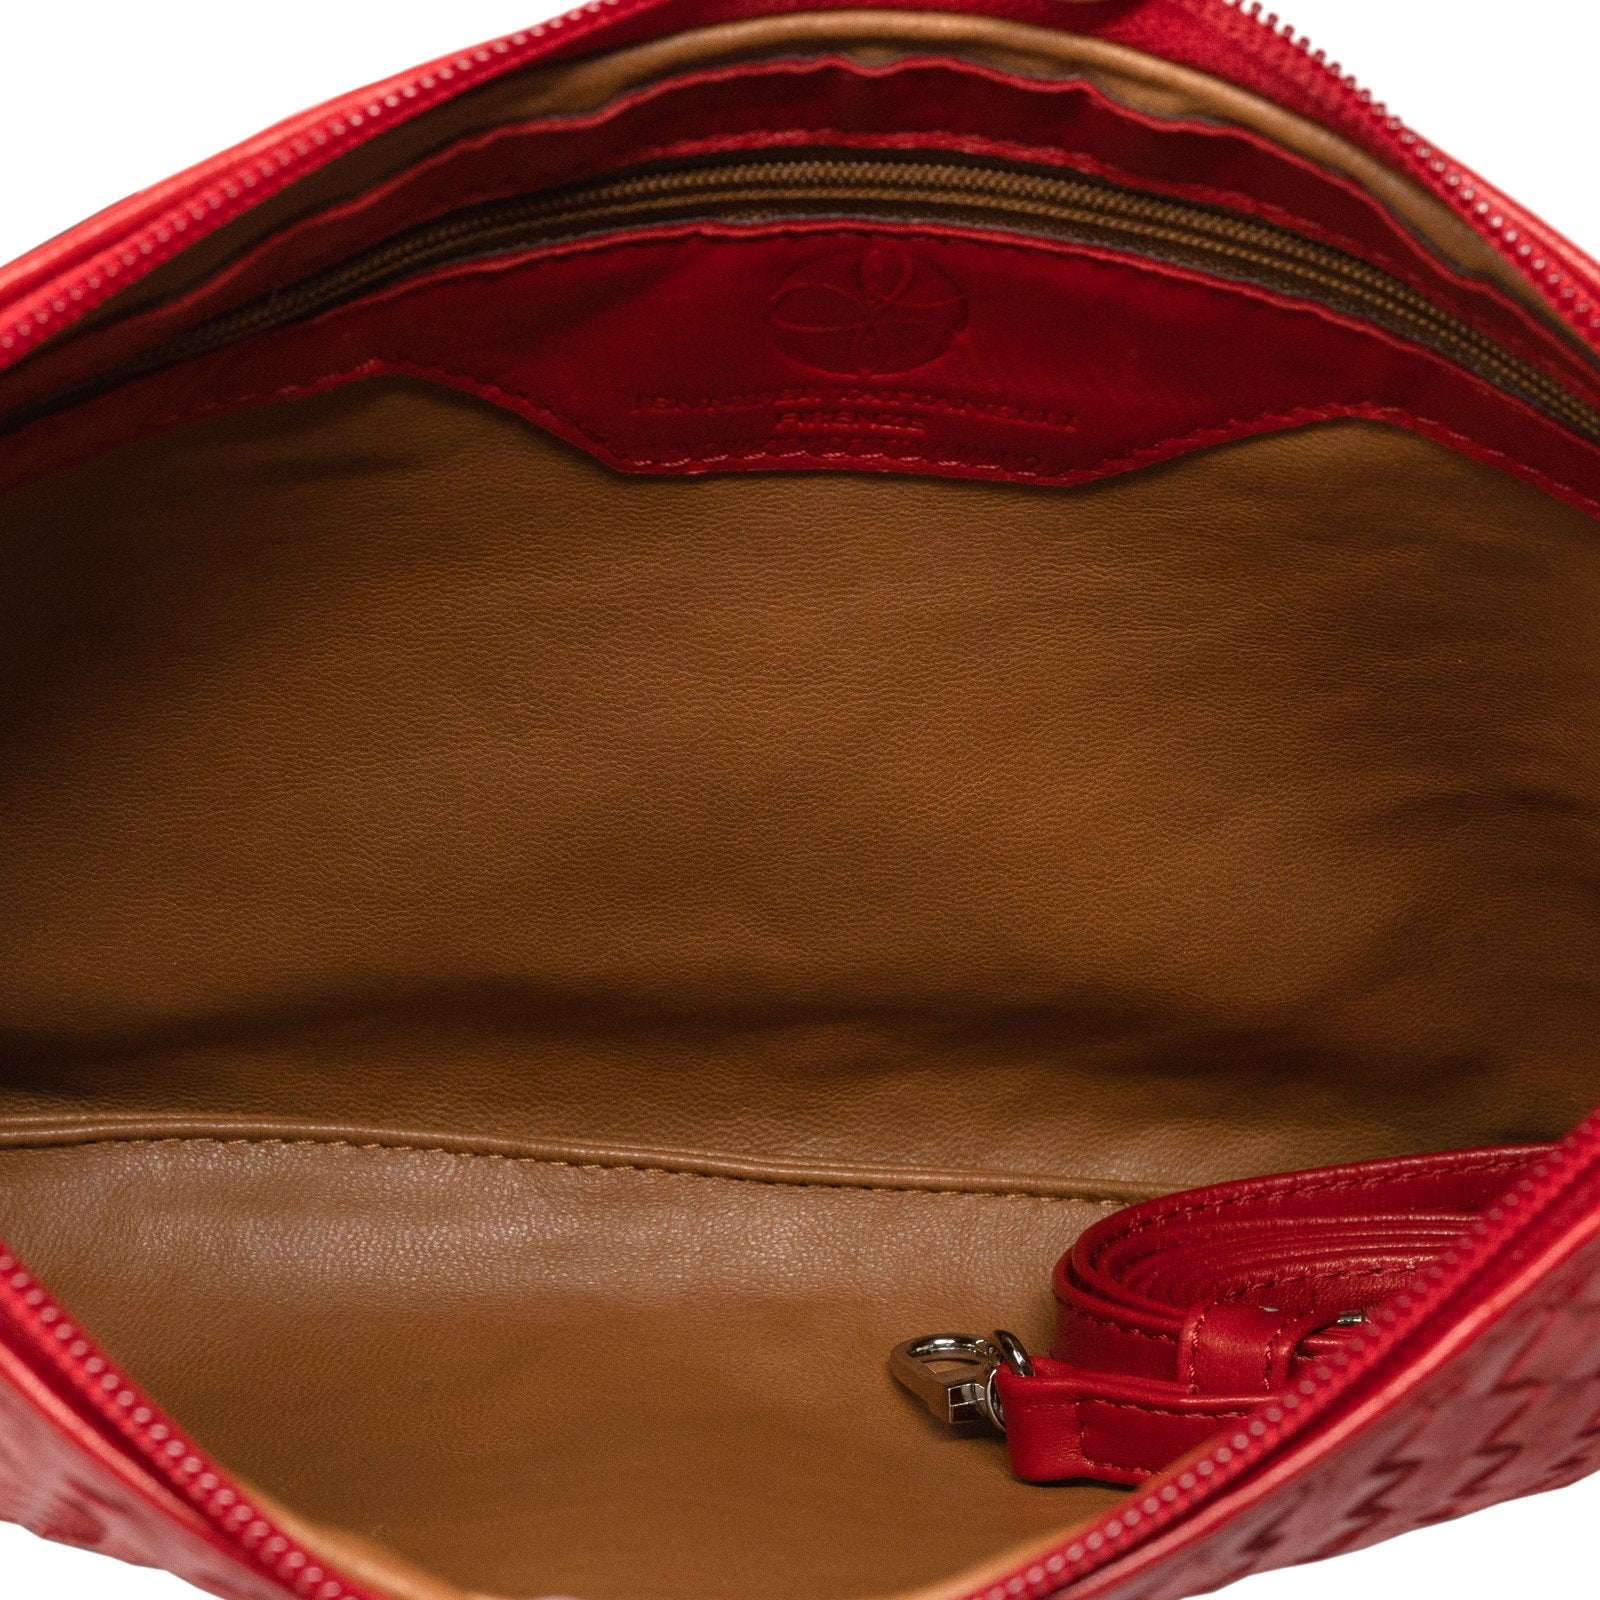 Women Intrecciato Leather Pouch Intrecciato Quadro Bronze - Jennifer Tattanelli